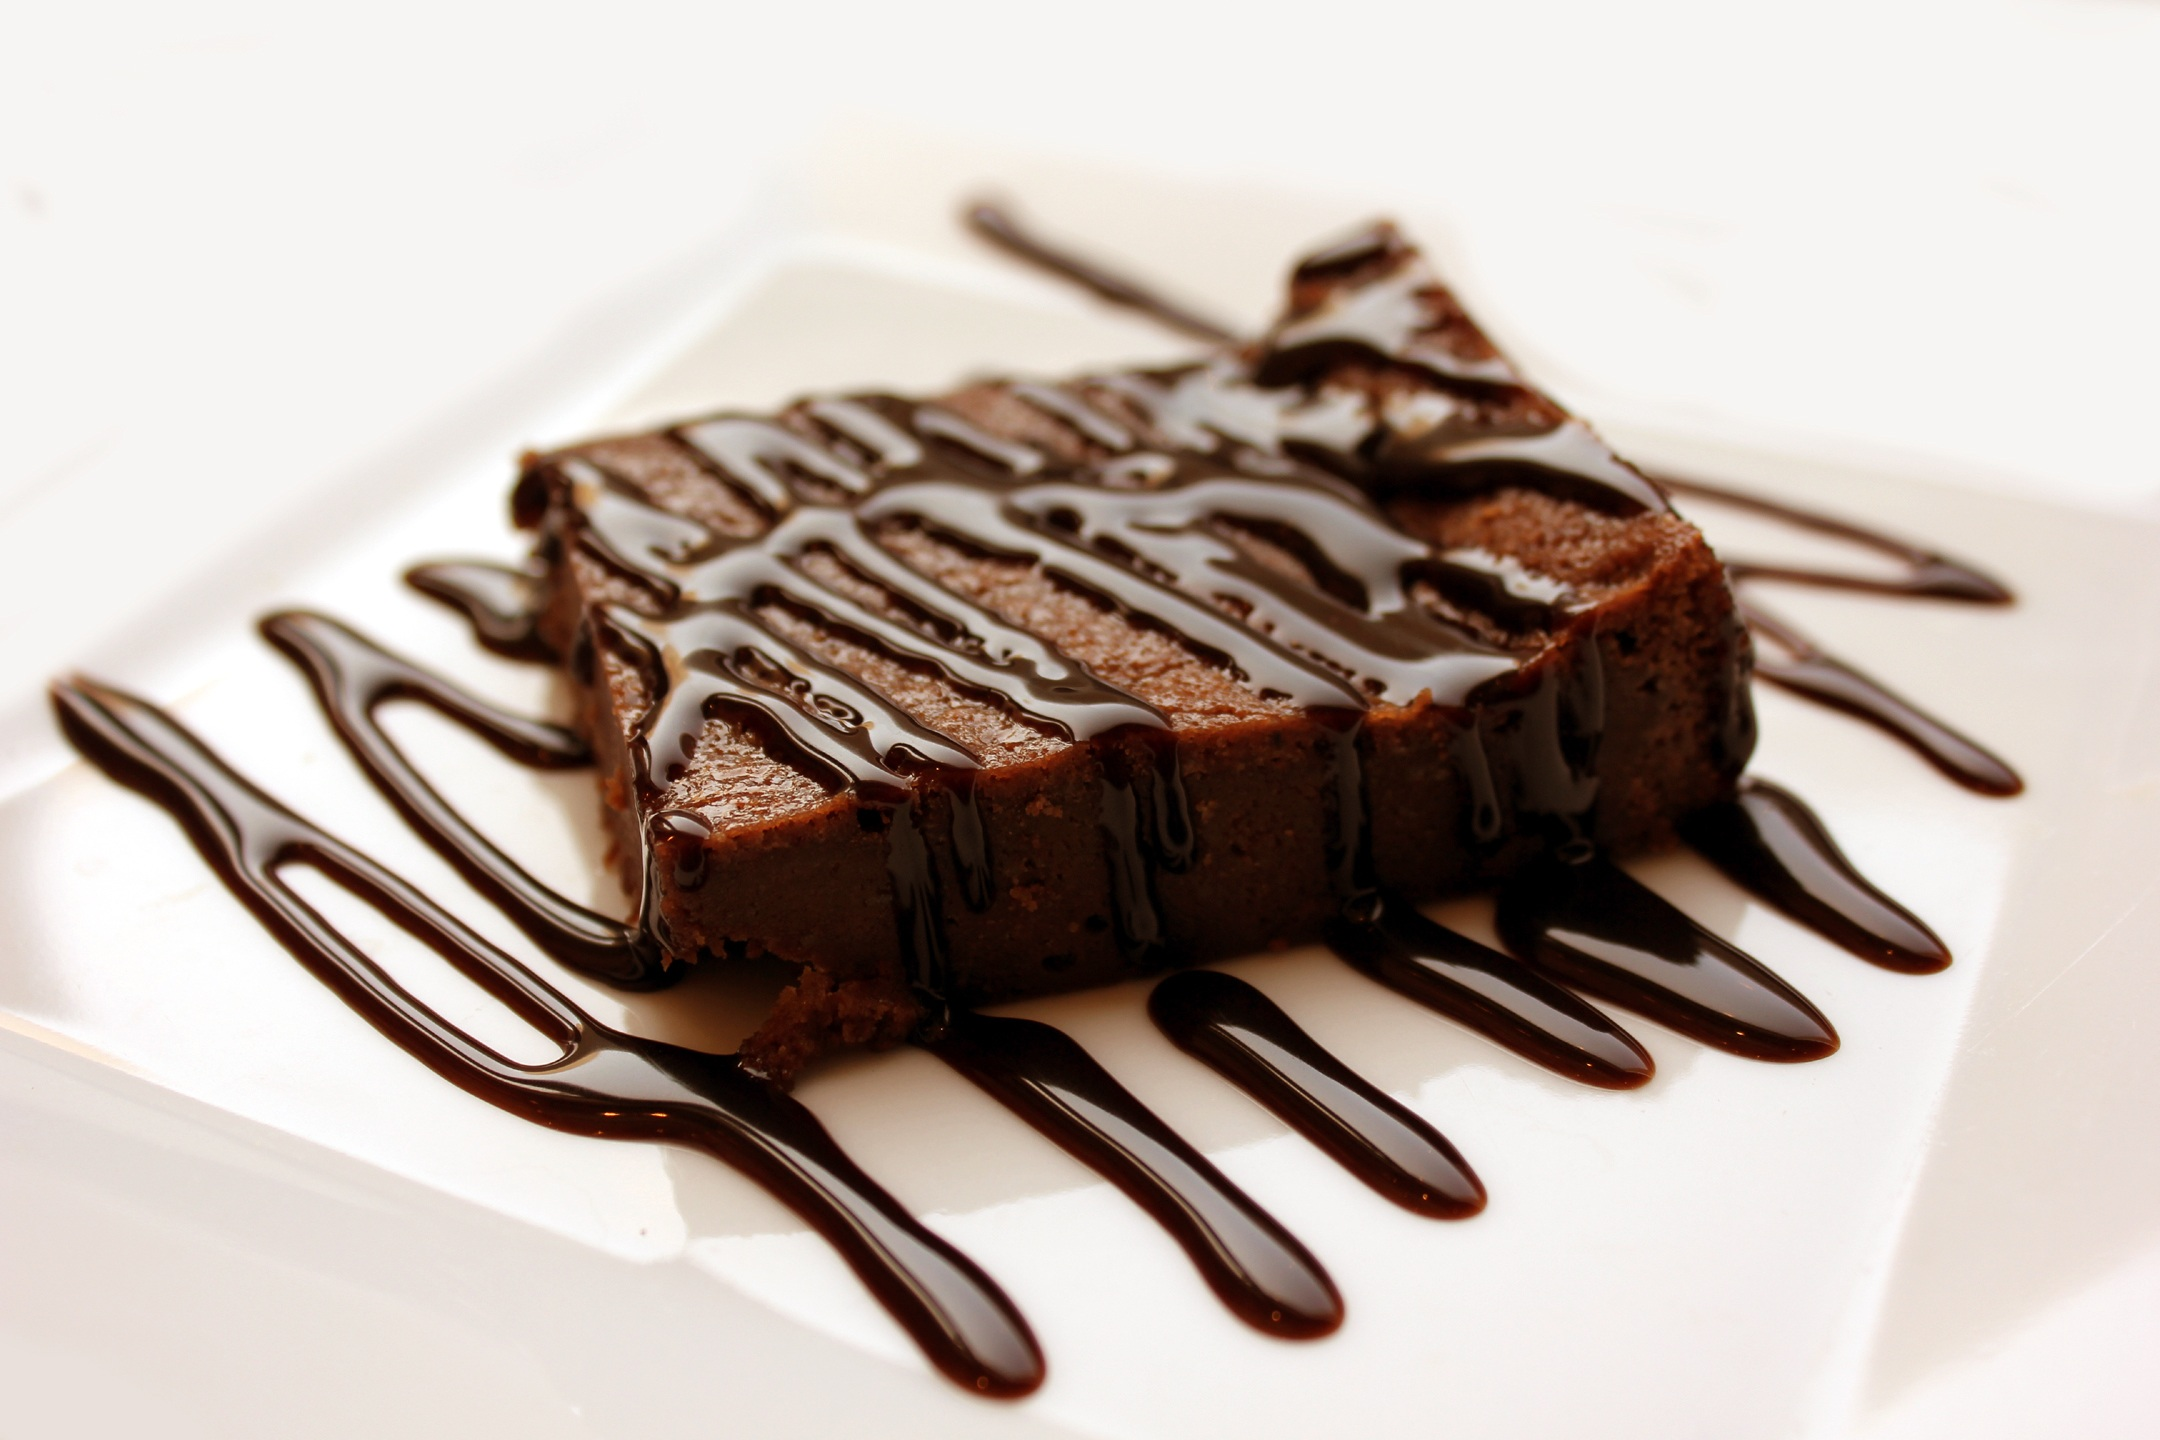 brownie-dessert-cake-sweet-45202.jpeg (2160×1440)